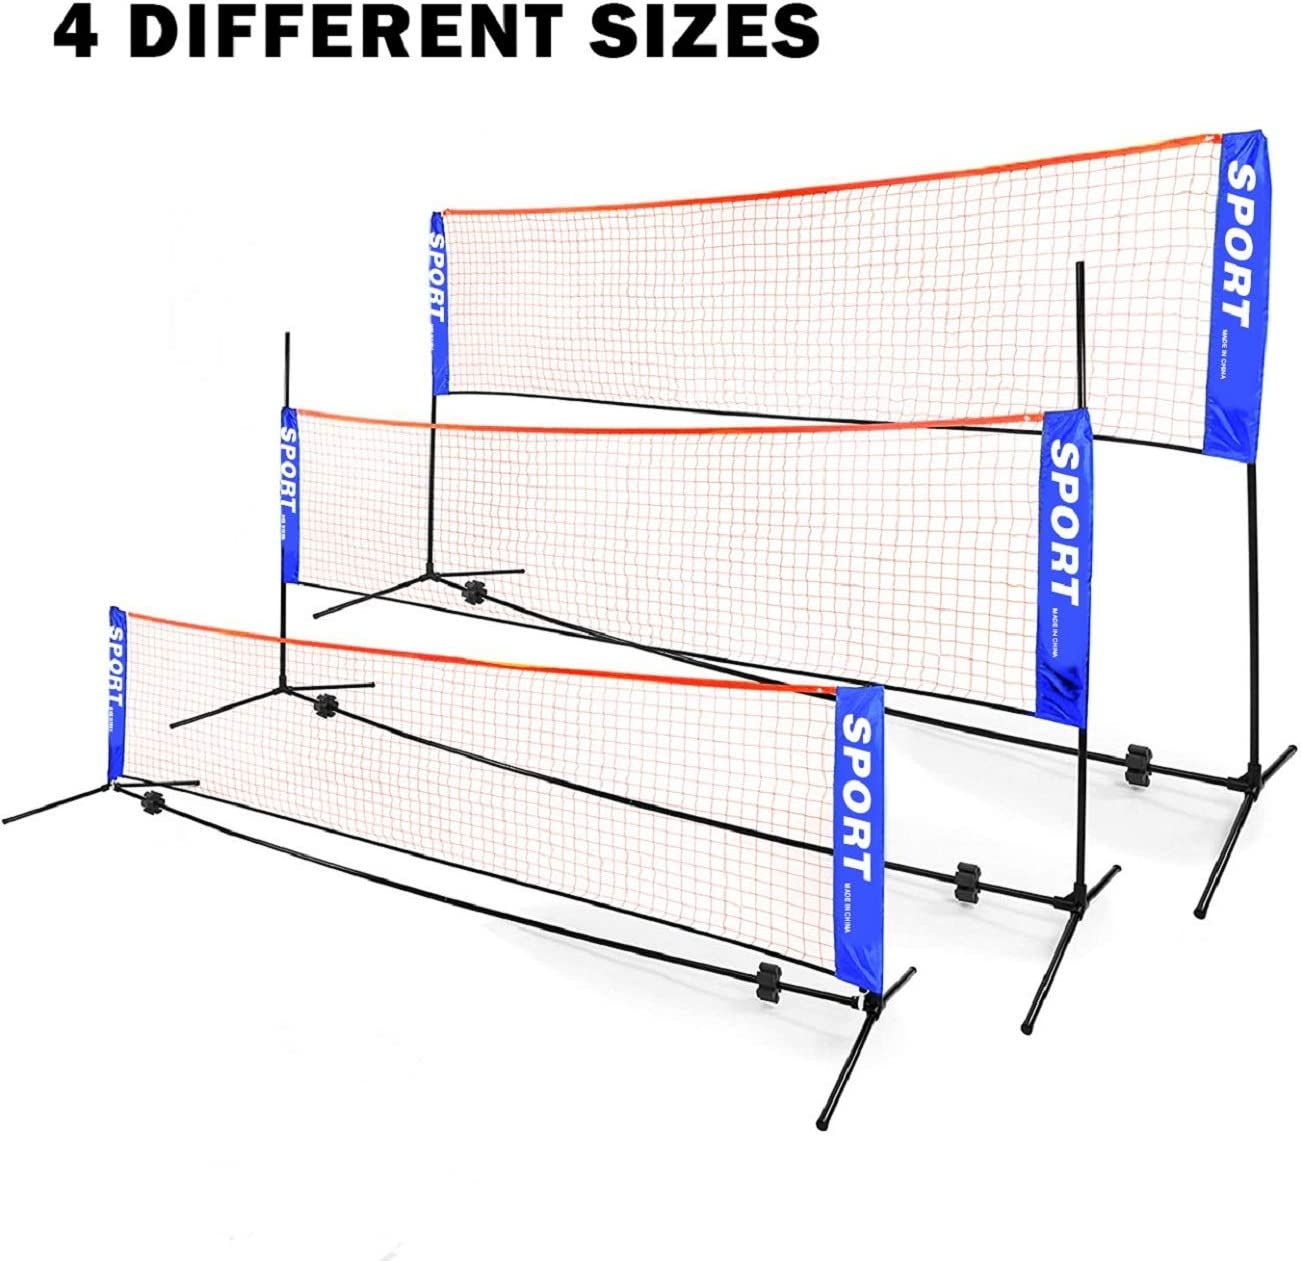 Amazon Com Yakita Excellent Quality Badminton Net 4 Different Sizes Portable Net Volleyball Tennis Adjustable Height Easy Setup Badminton Set With Carry Bag For Outdoor Indoor Court Backyard Beach Sports Outdoors